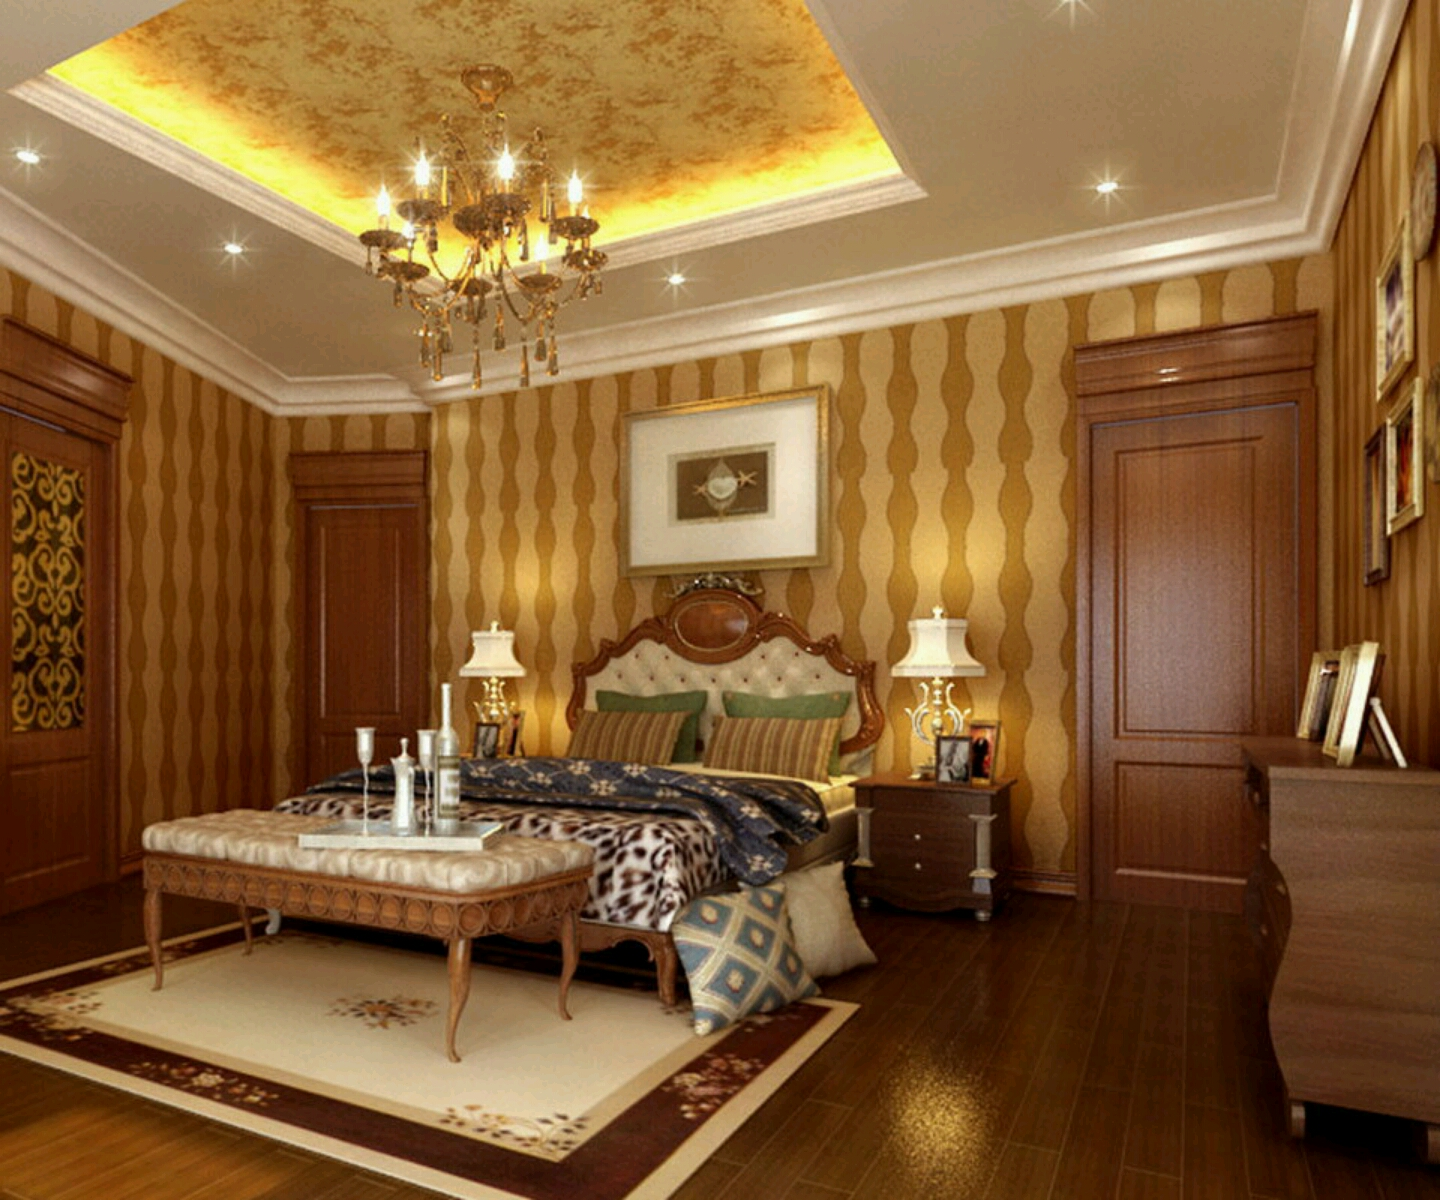 New home designs latest modern bedrooms designs ceiling Modern bedroom designs 2012